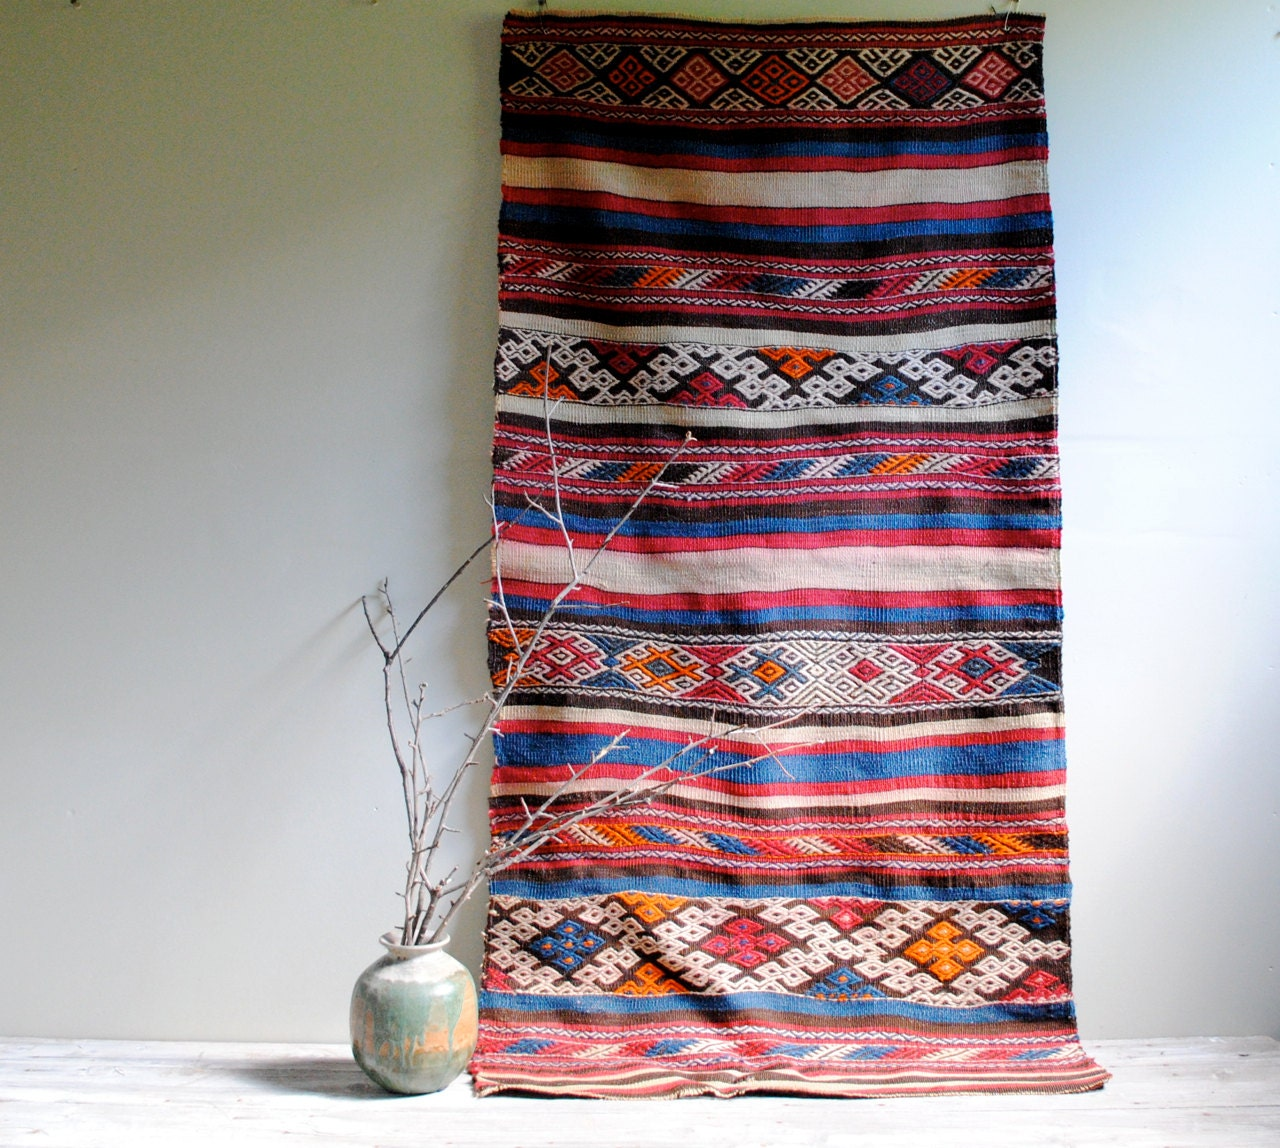 Vintage Turkish Kilim Rug From Sivas City / 5' By